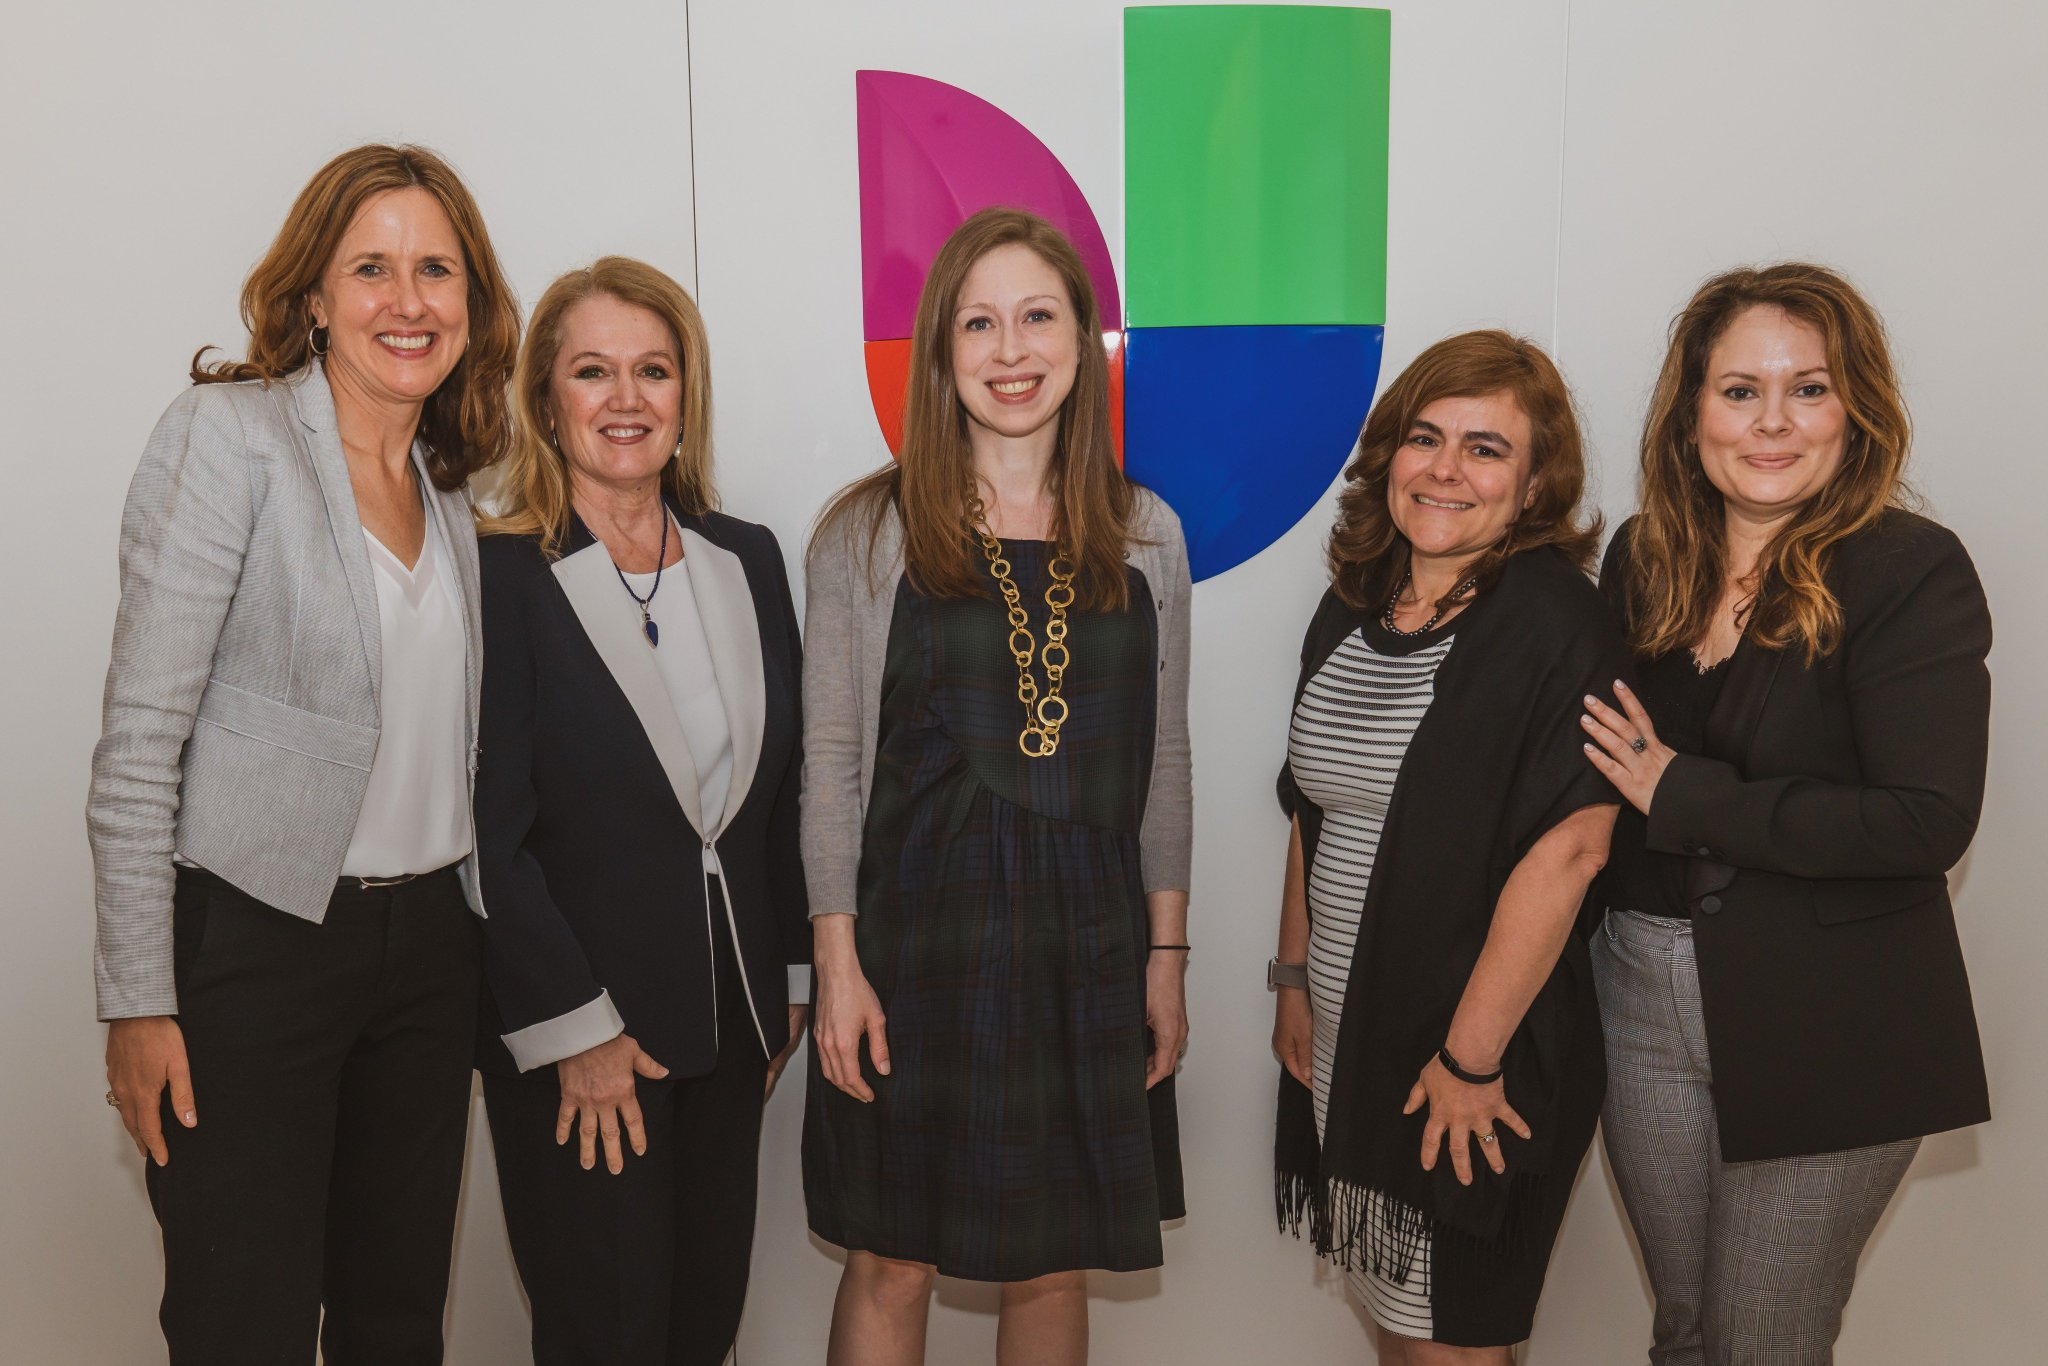 .@Univision hosted @ChelseaClinton @ClintonFdn to discuss the importance of early childhood education and why we need to help ensure #Hispanic households know how vital it is. https://t.co/7IqkSVK2SV